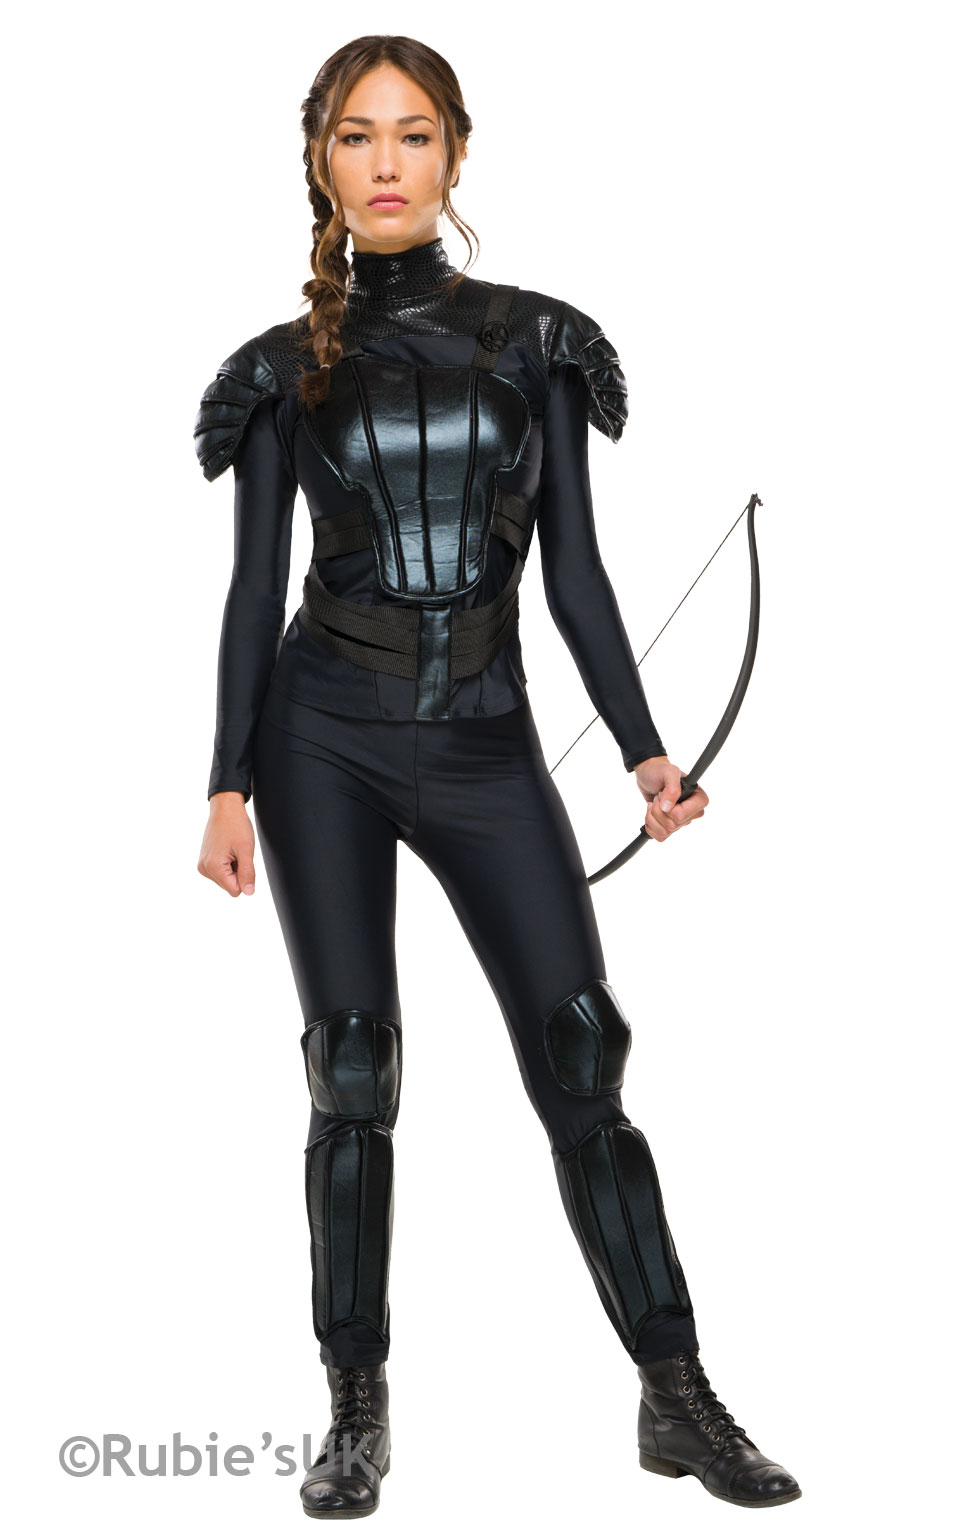 katniss mockingjay ladies costume | all ladies costumes | mega fancy